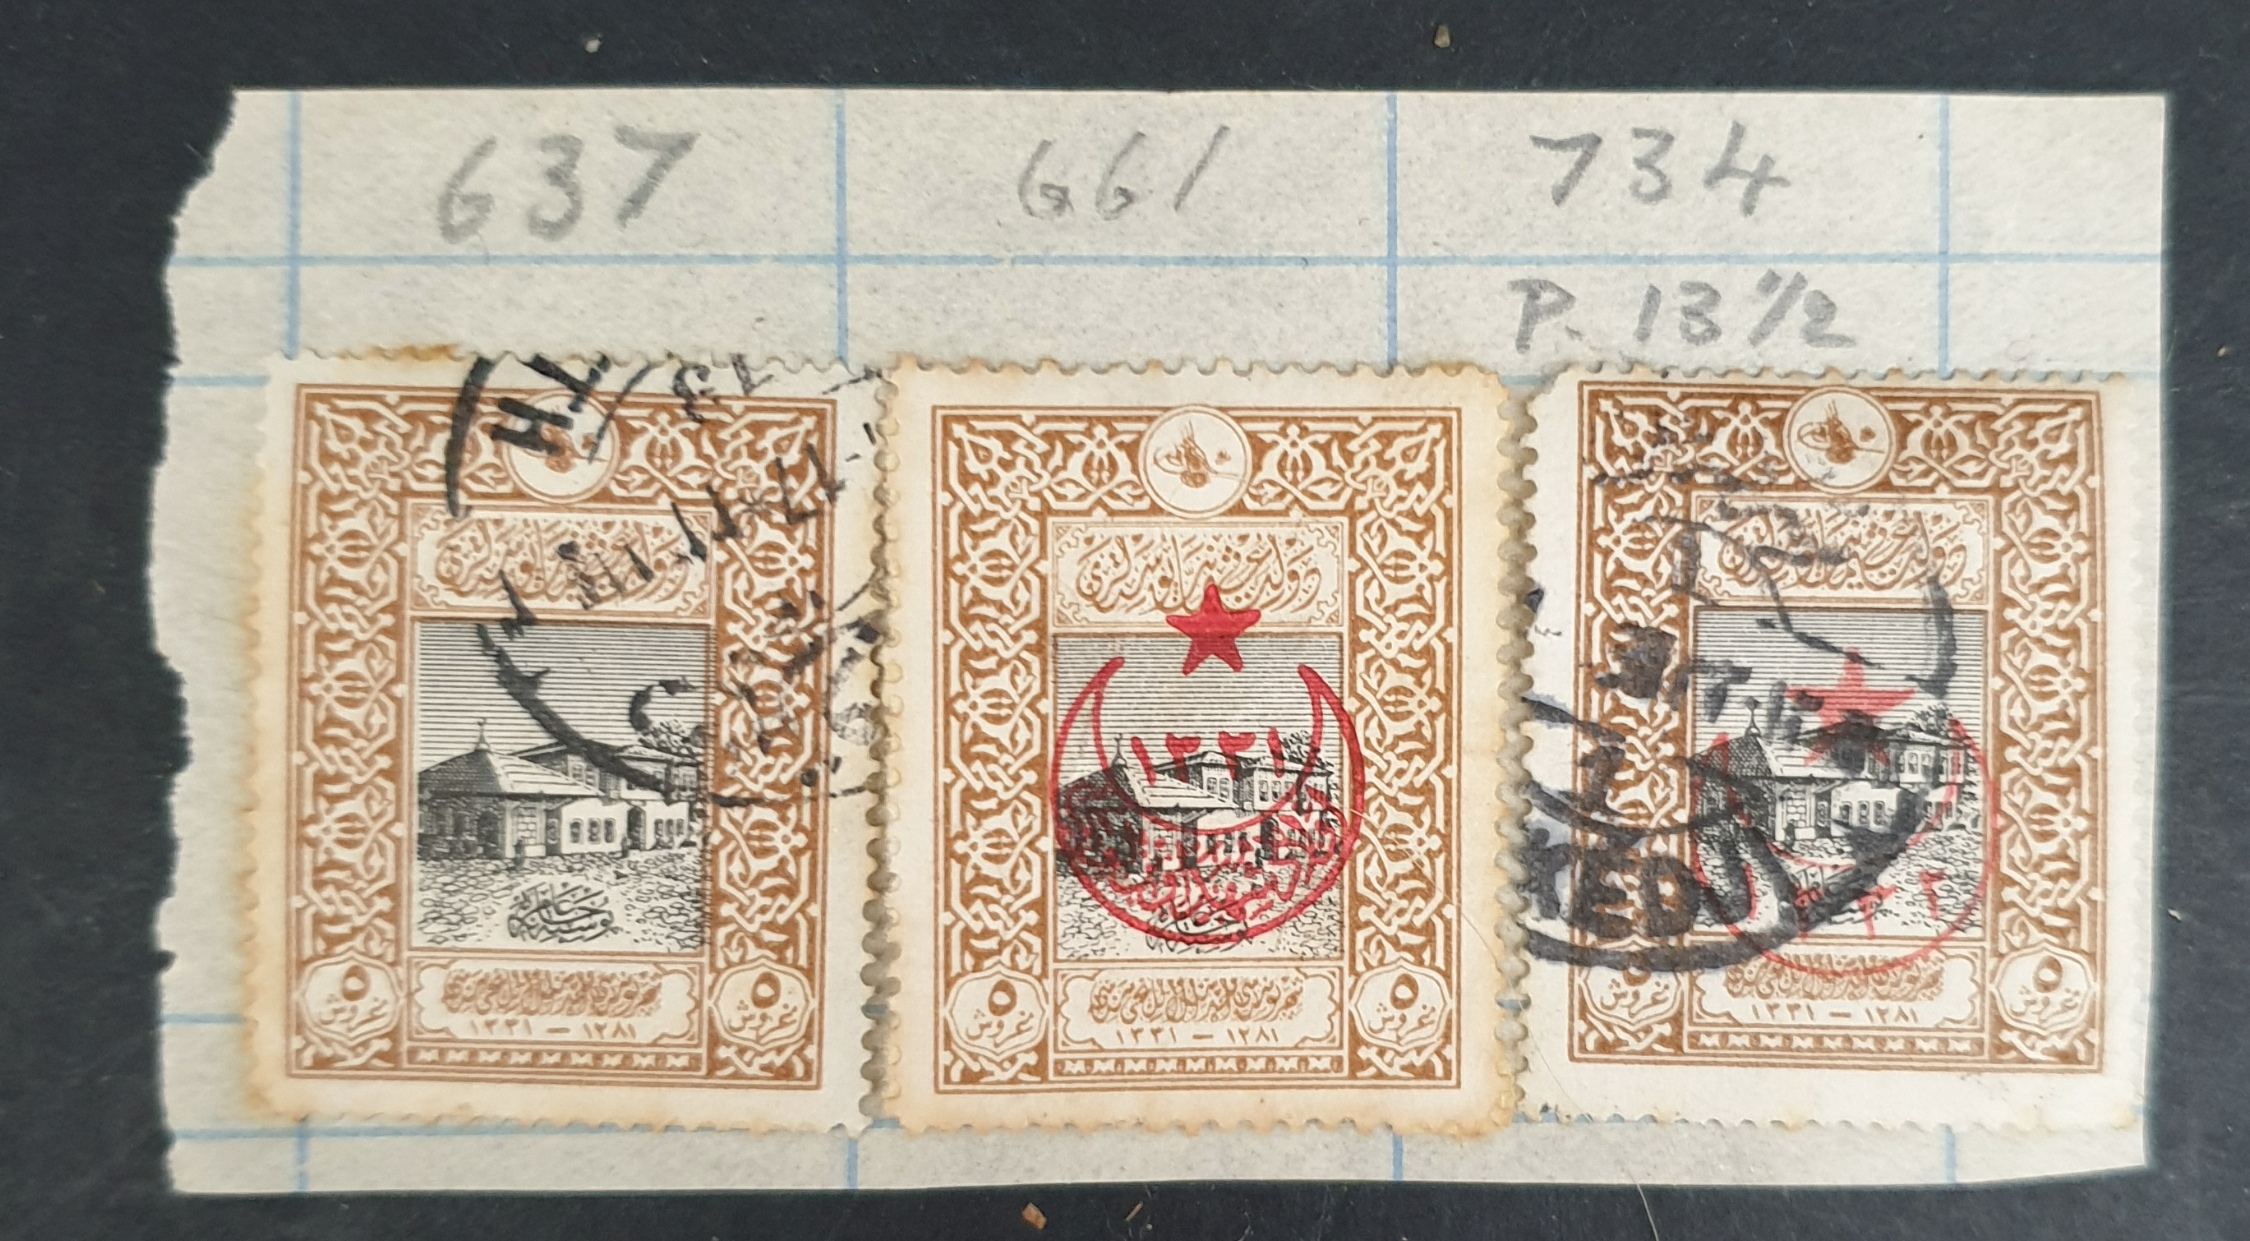 Parcel of 150 Plus Assorted Posatage Stamps - Image 2 of 3